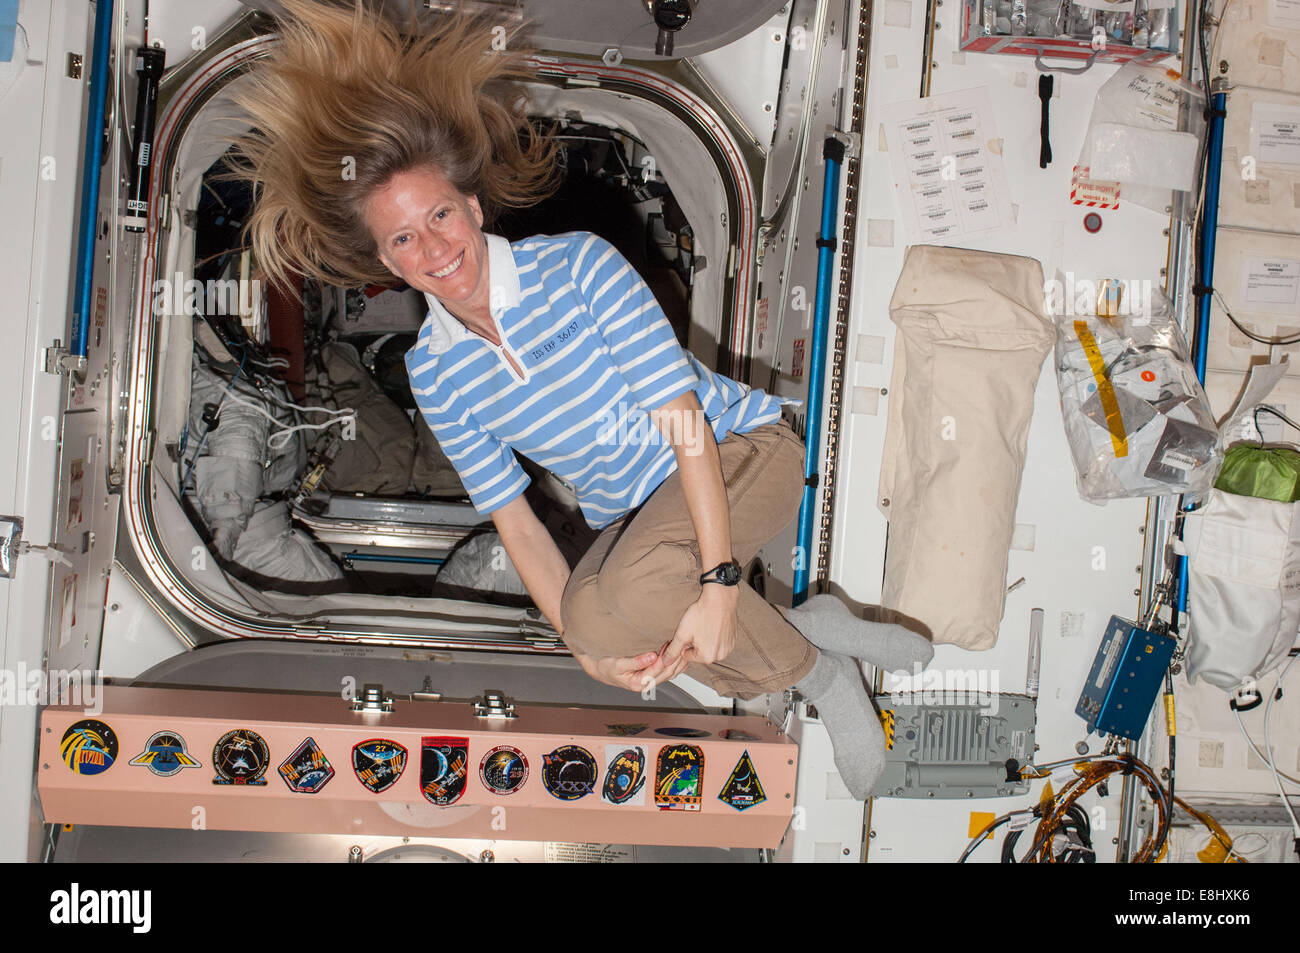 The Unity connecting node serves as a passageway to many other parts of the International Space Station. Crews often Stock Photo